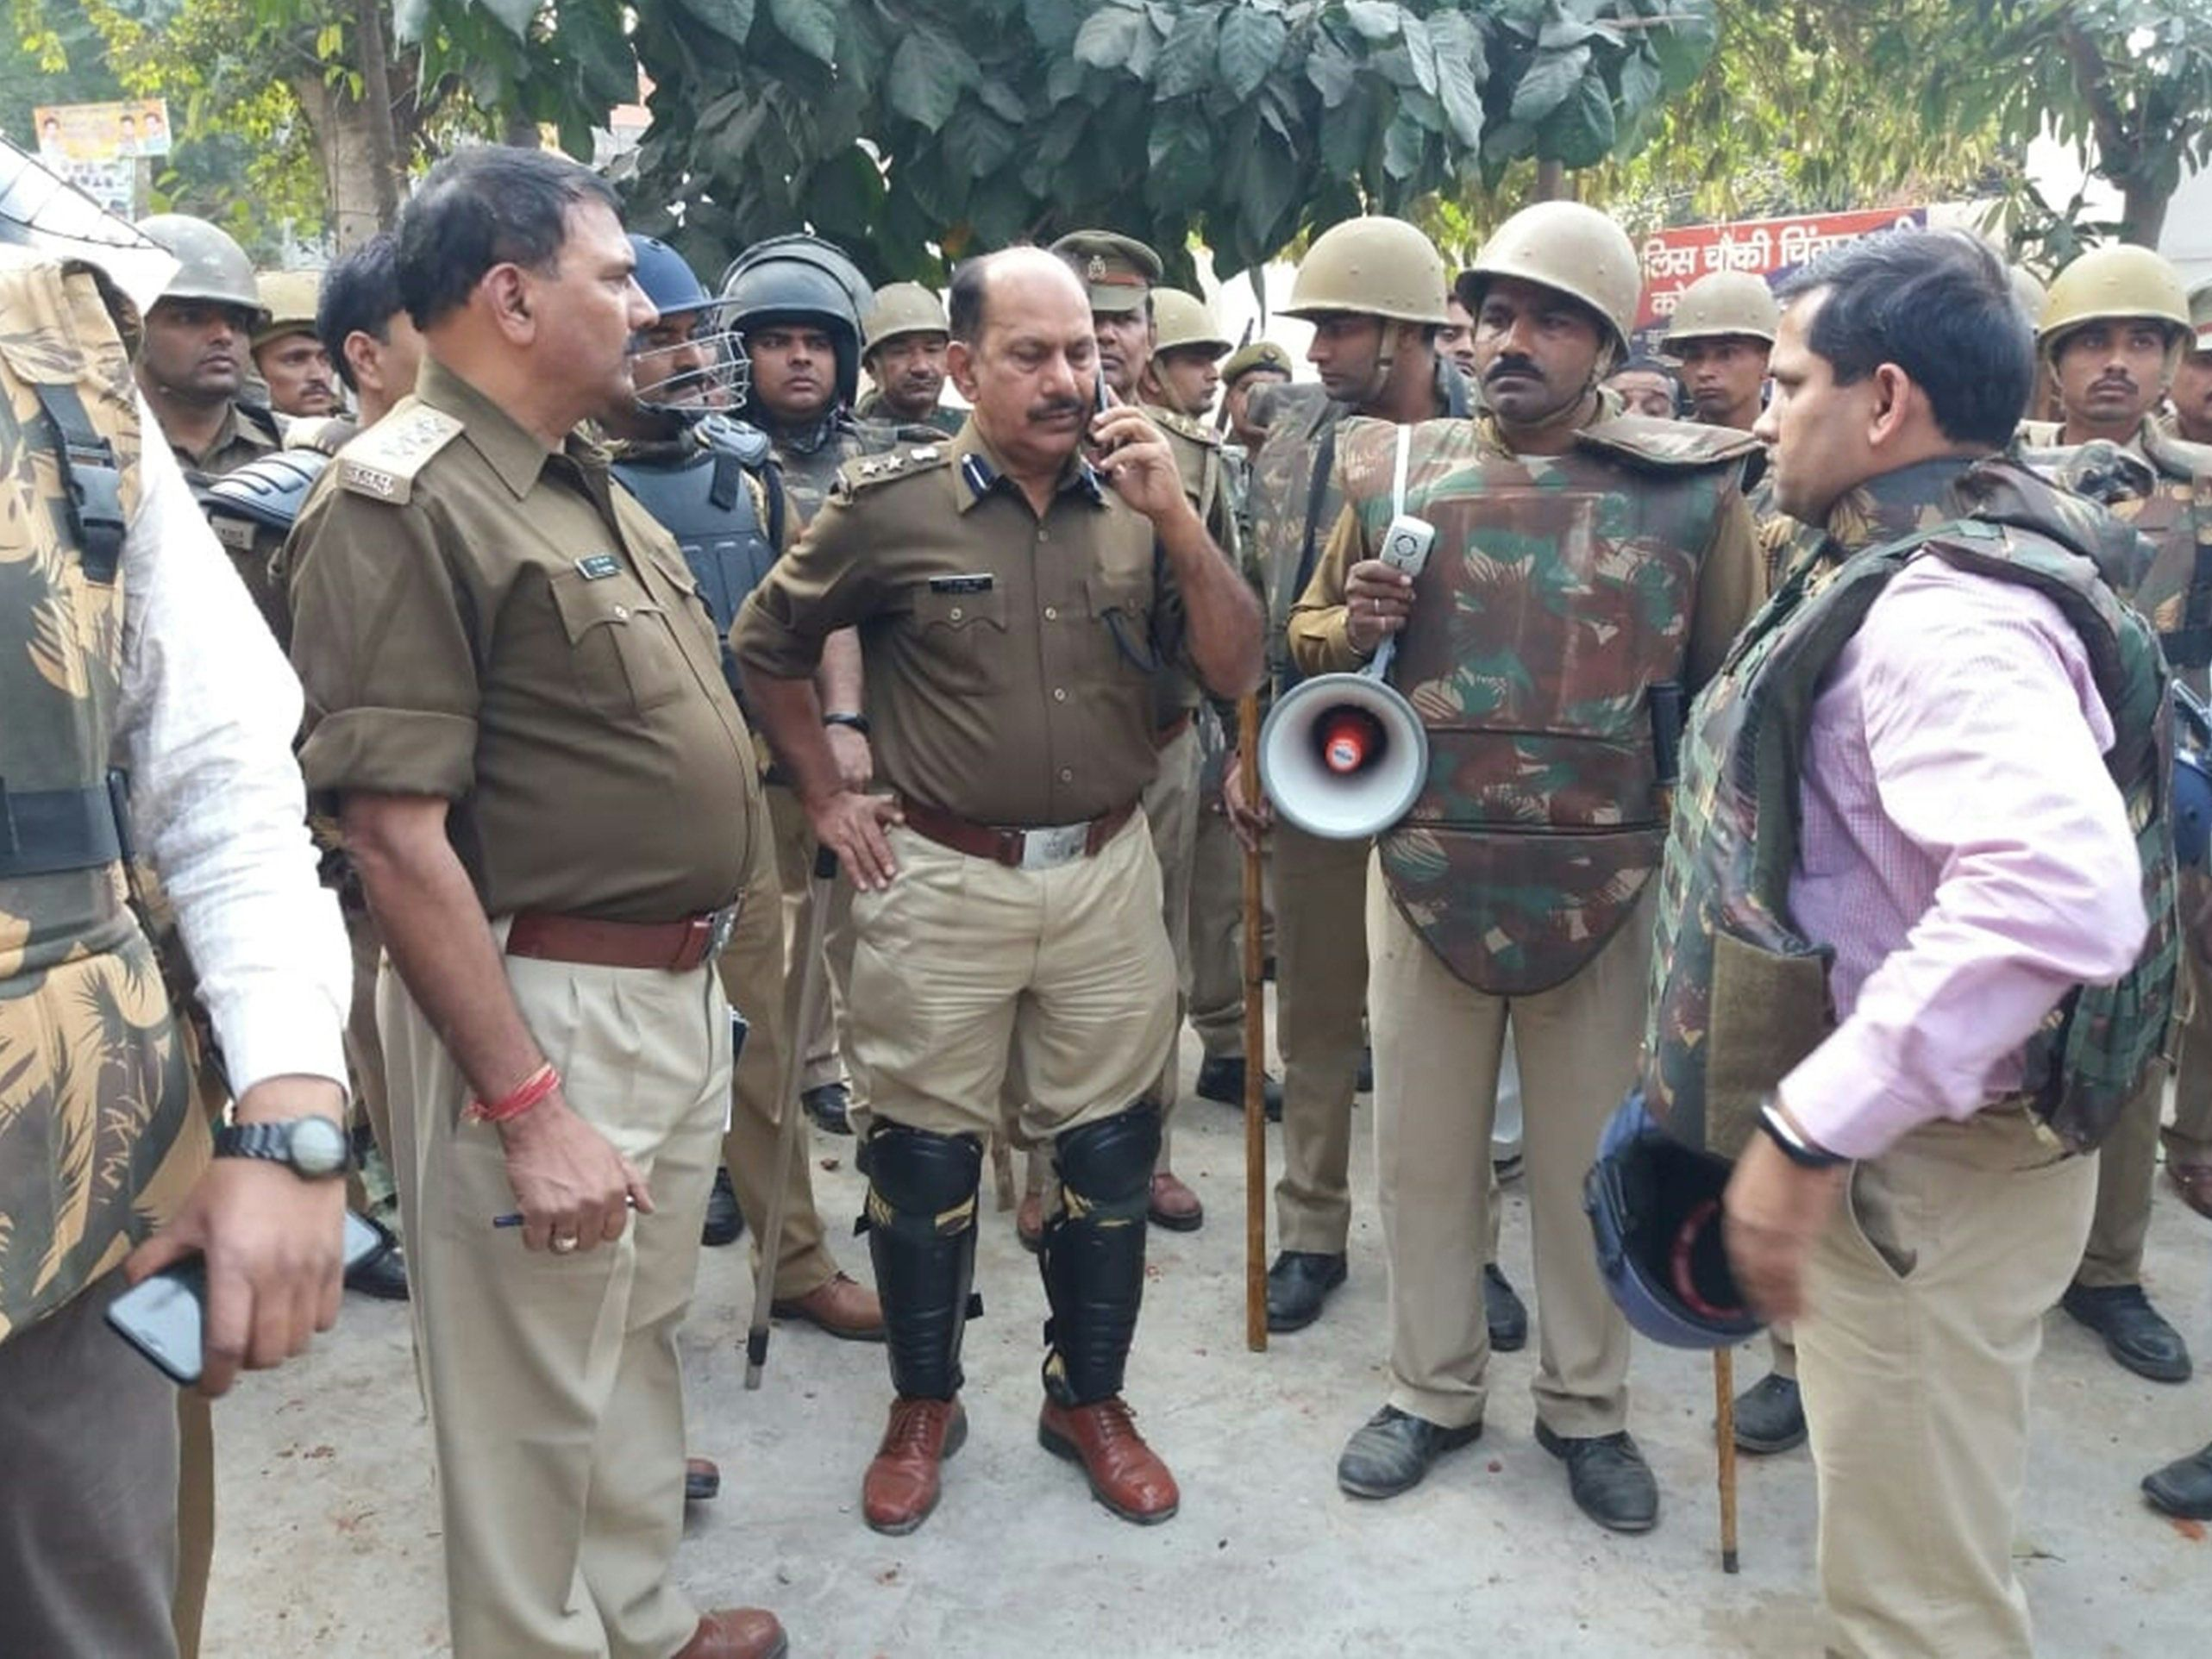 Police in Bulandshahr after mob violence in the